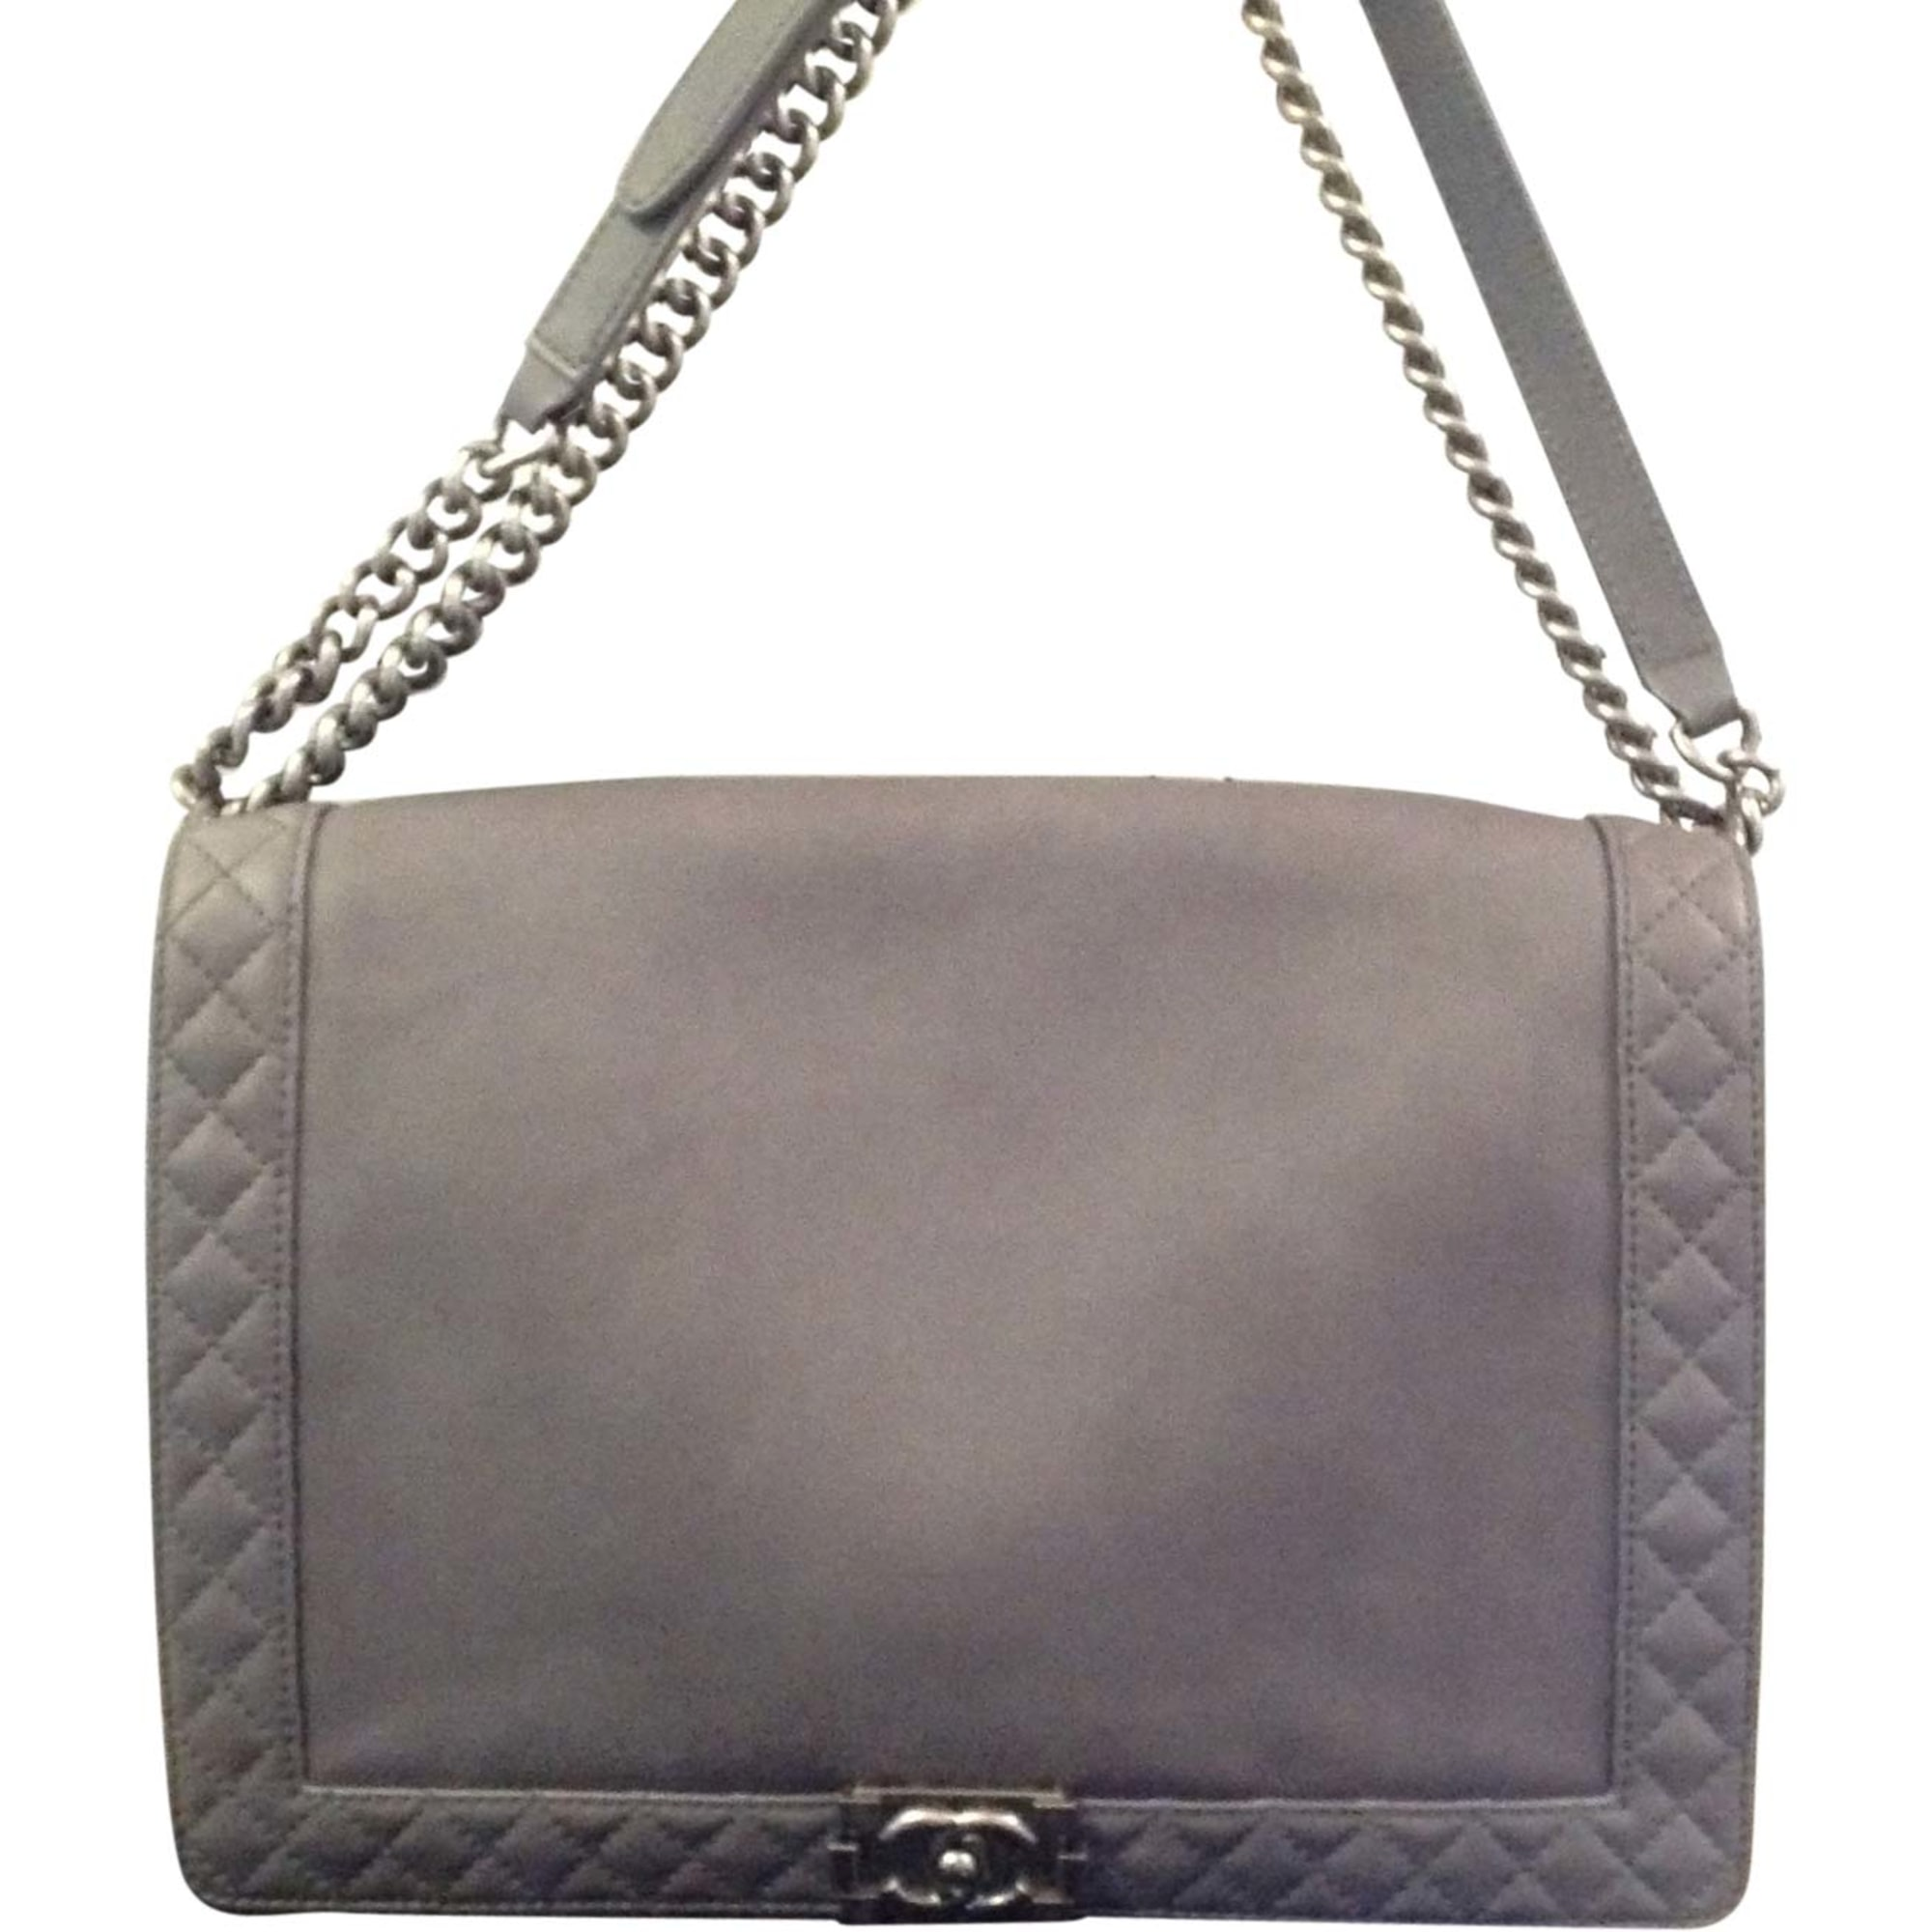 Sac à main en cuir CHANEL Boy Gris, anthracite